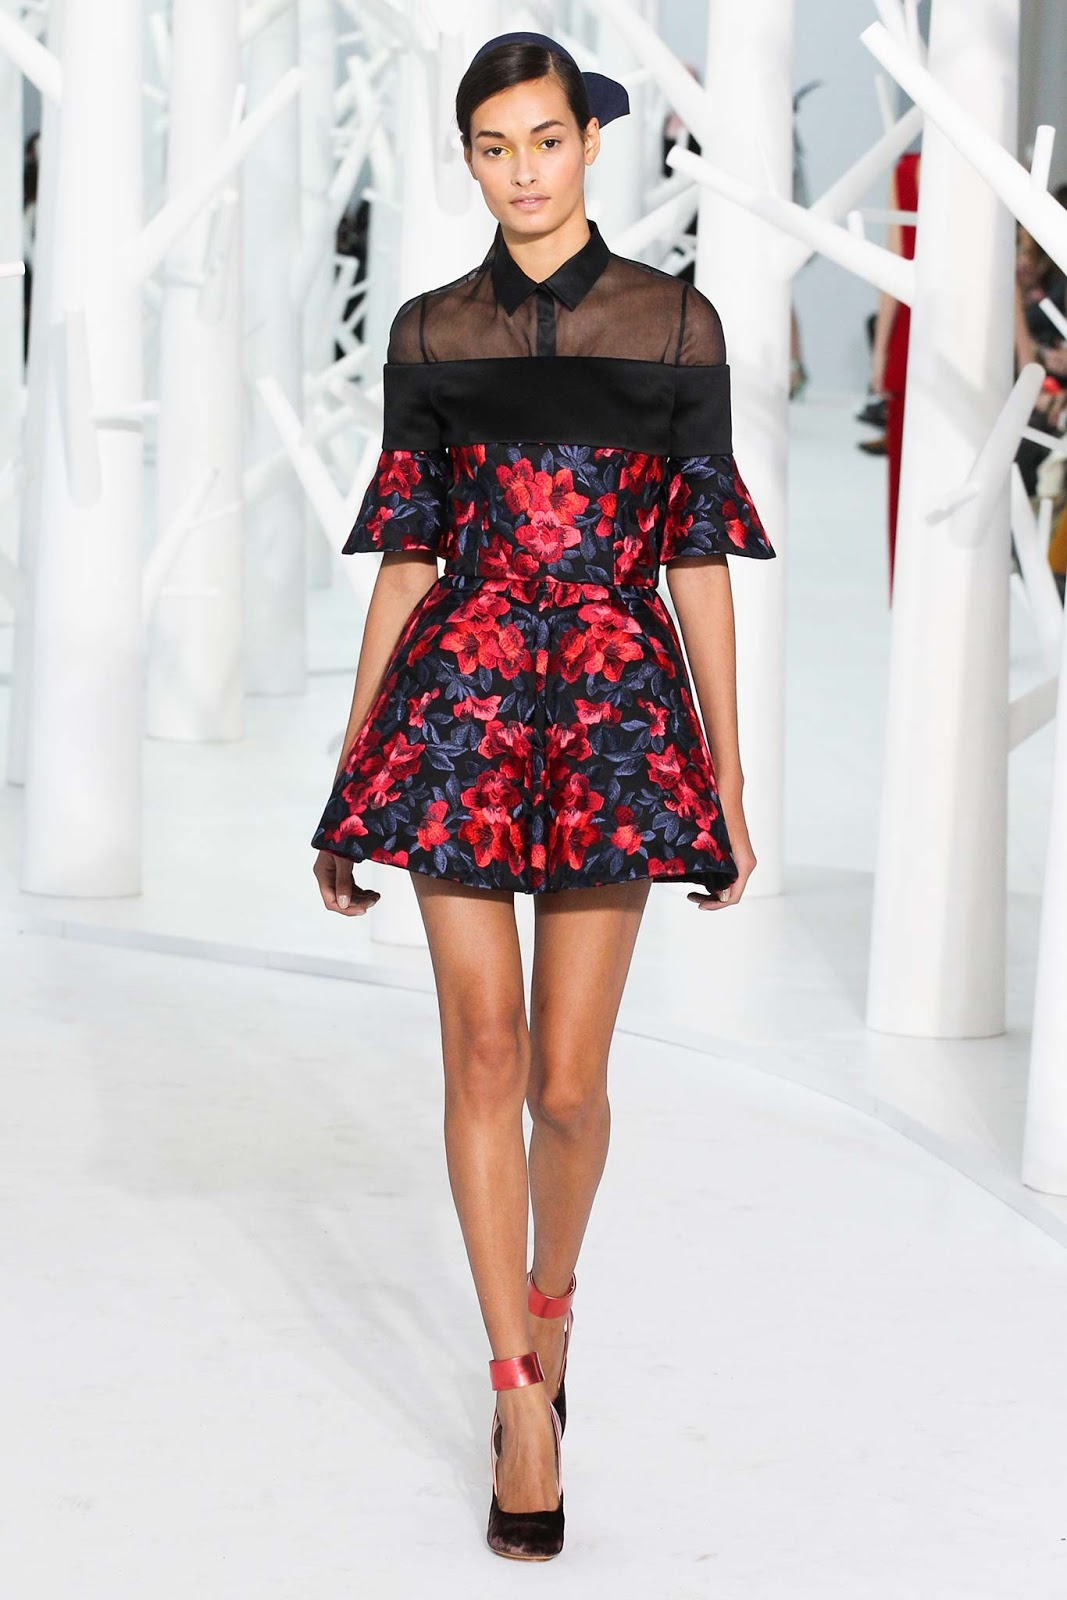 Brocade trend on AW 2015 runway at Delpozo / via www.fashionedbylove.co.uk